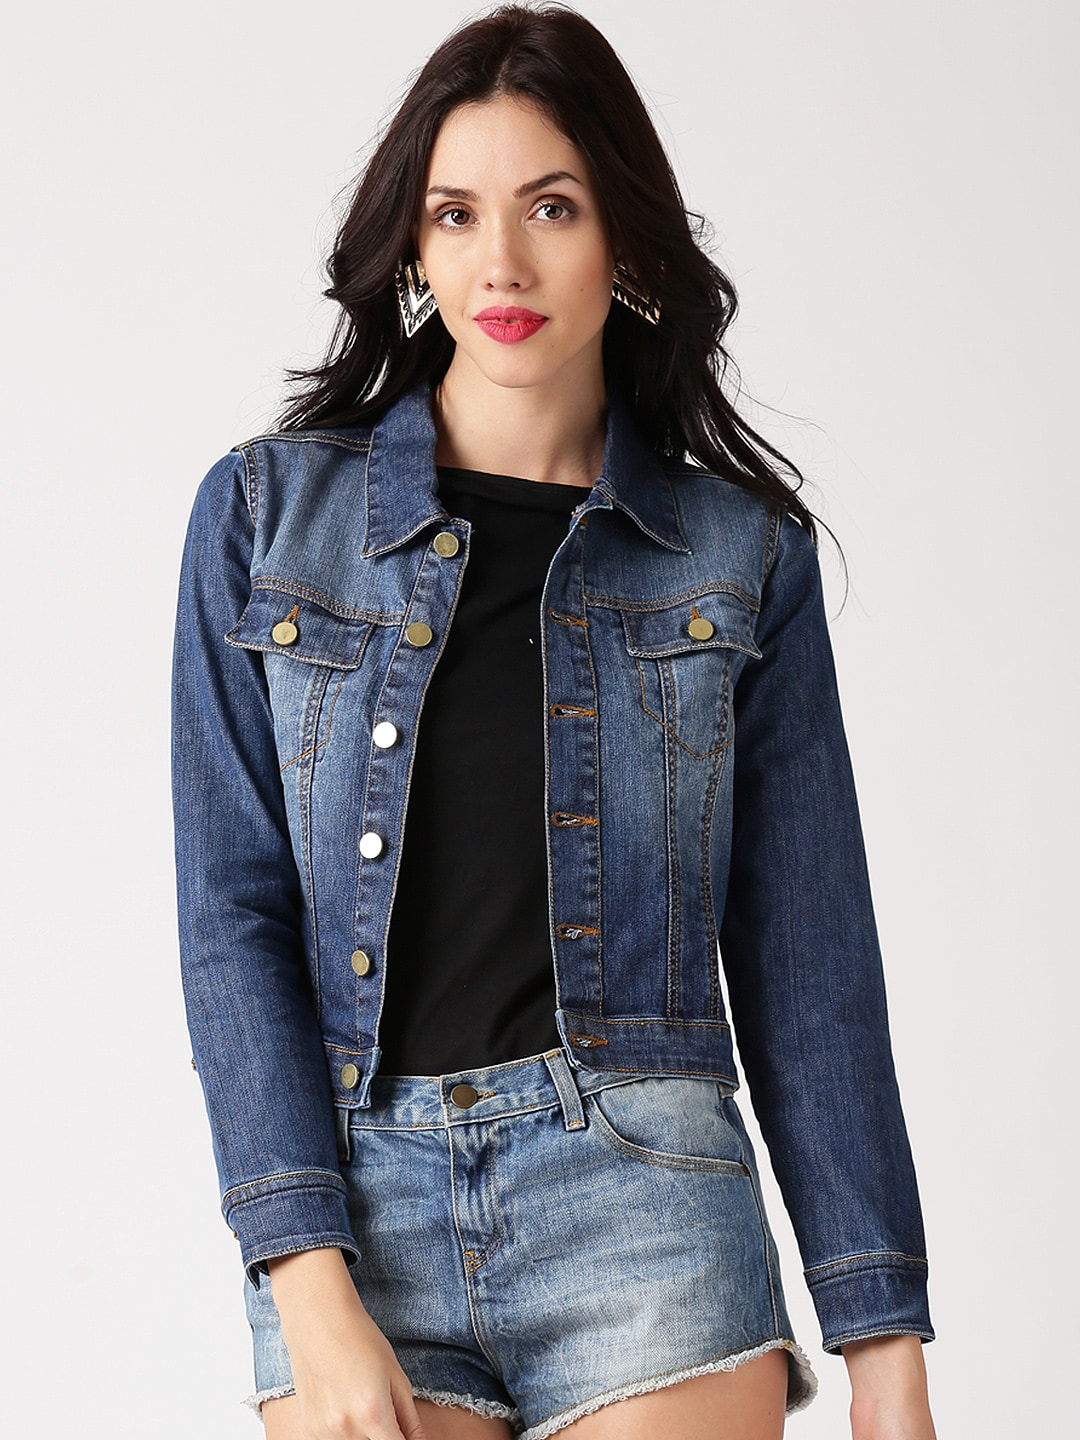 Buy womens denim jackets online india – New Fashion Photo Blog